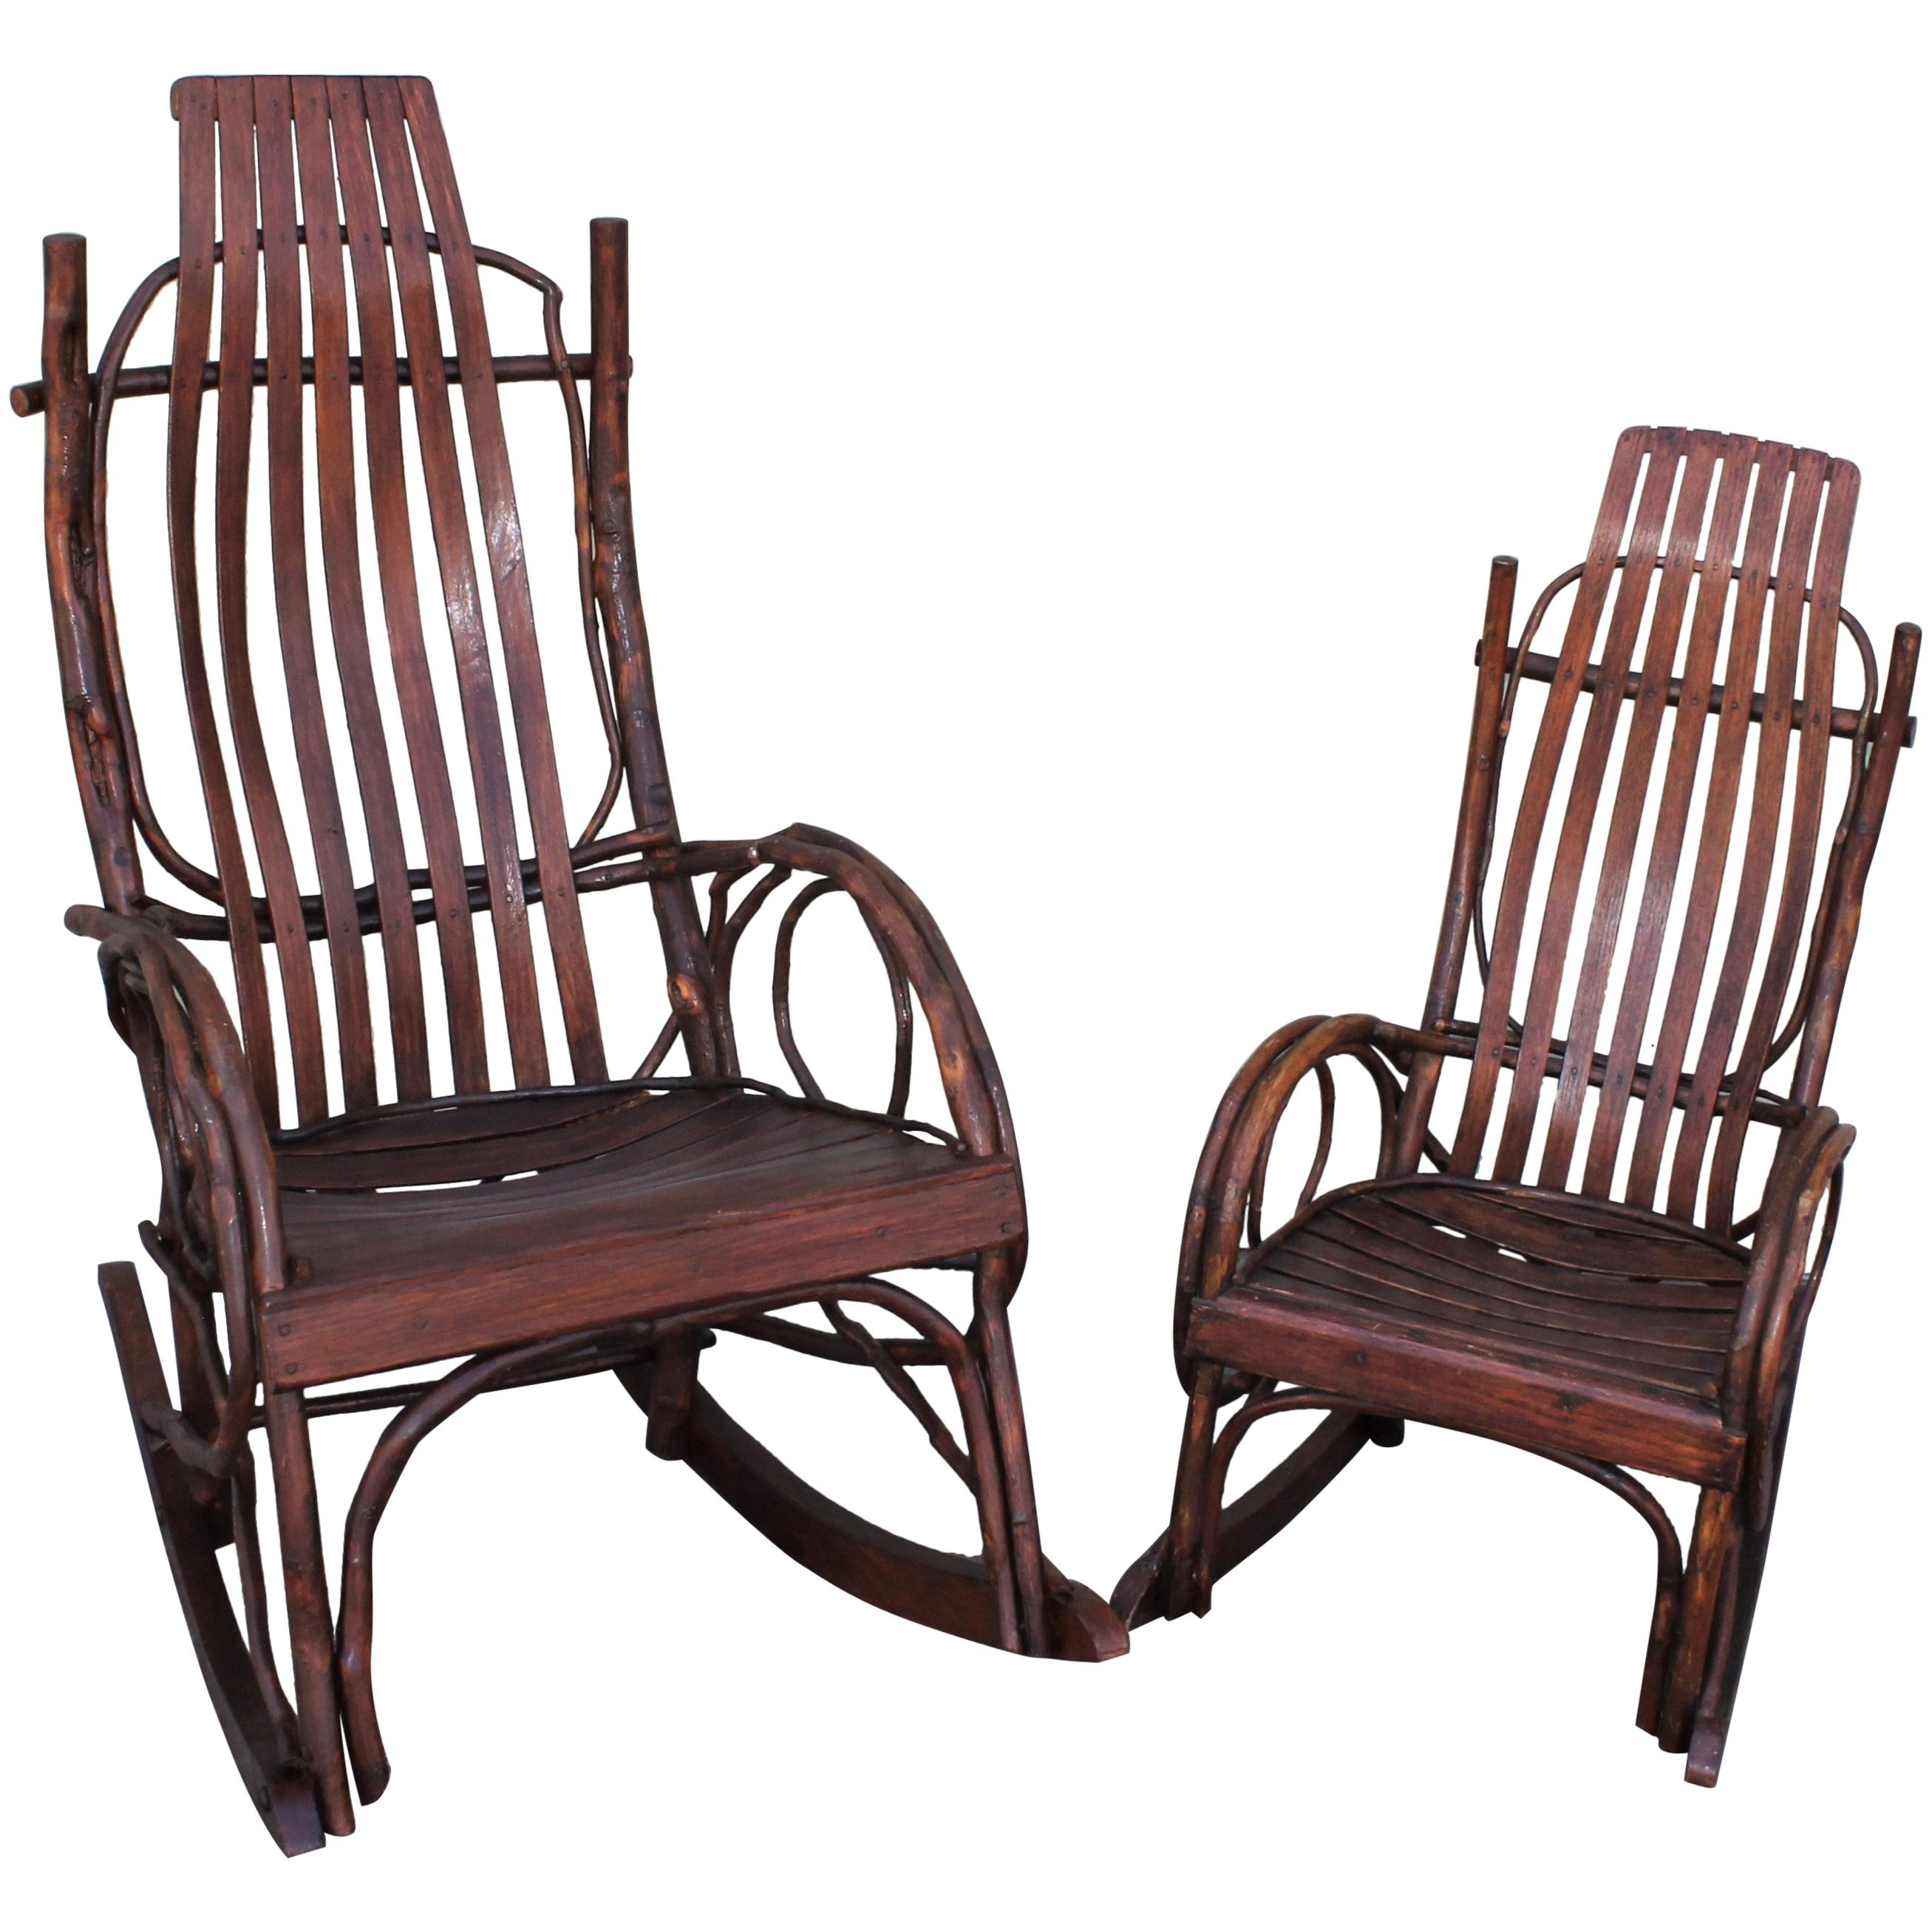 Amish Rocking Chair Amish Bent Wood Rocking Chairs Adults And Child S 2